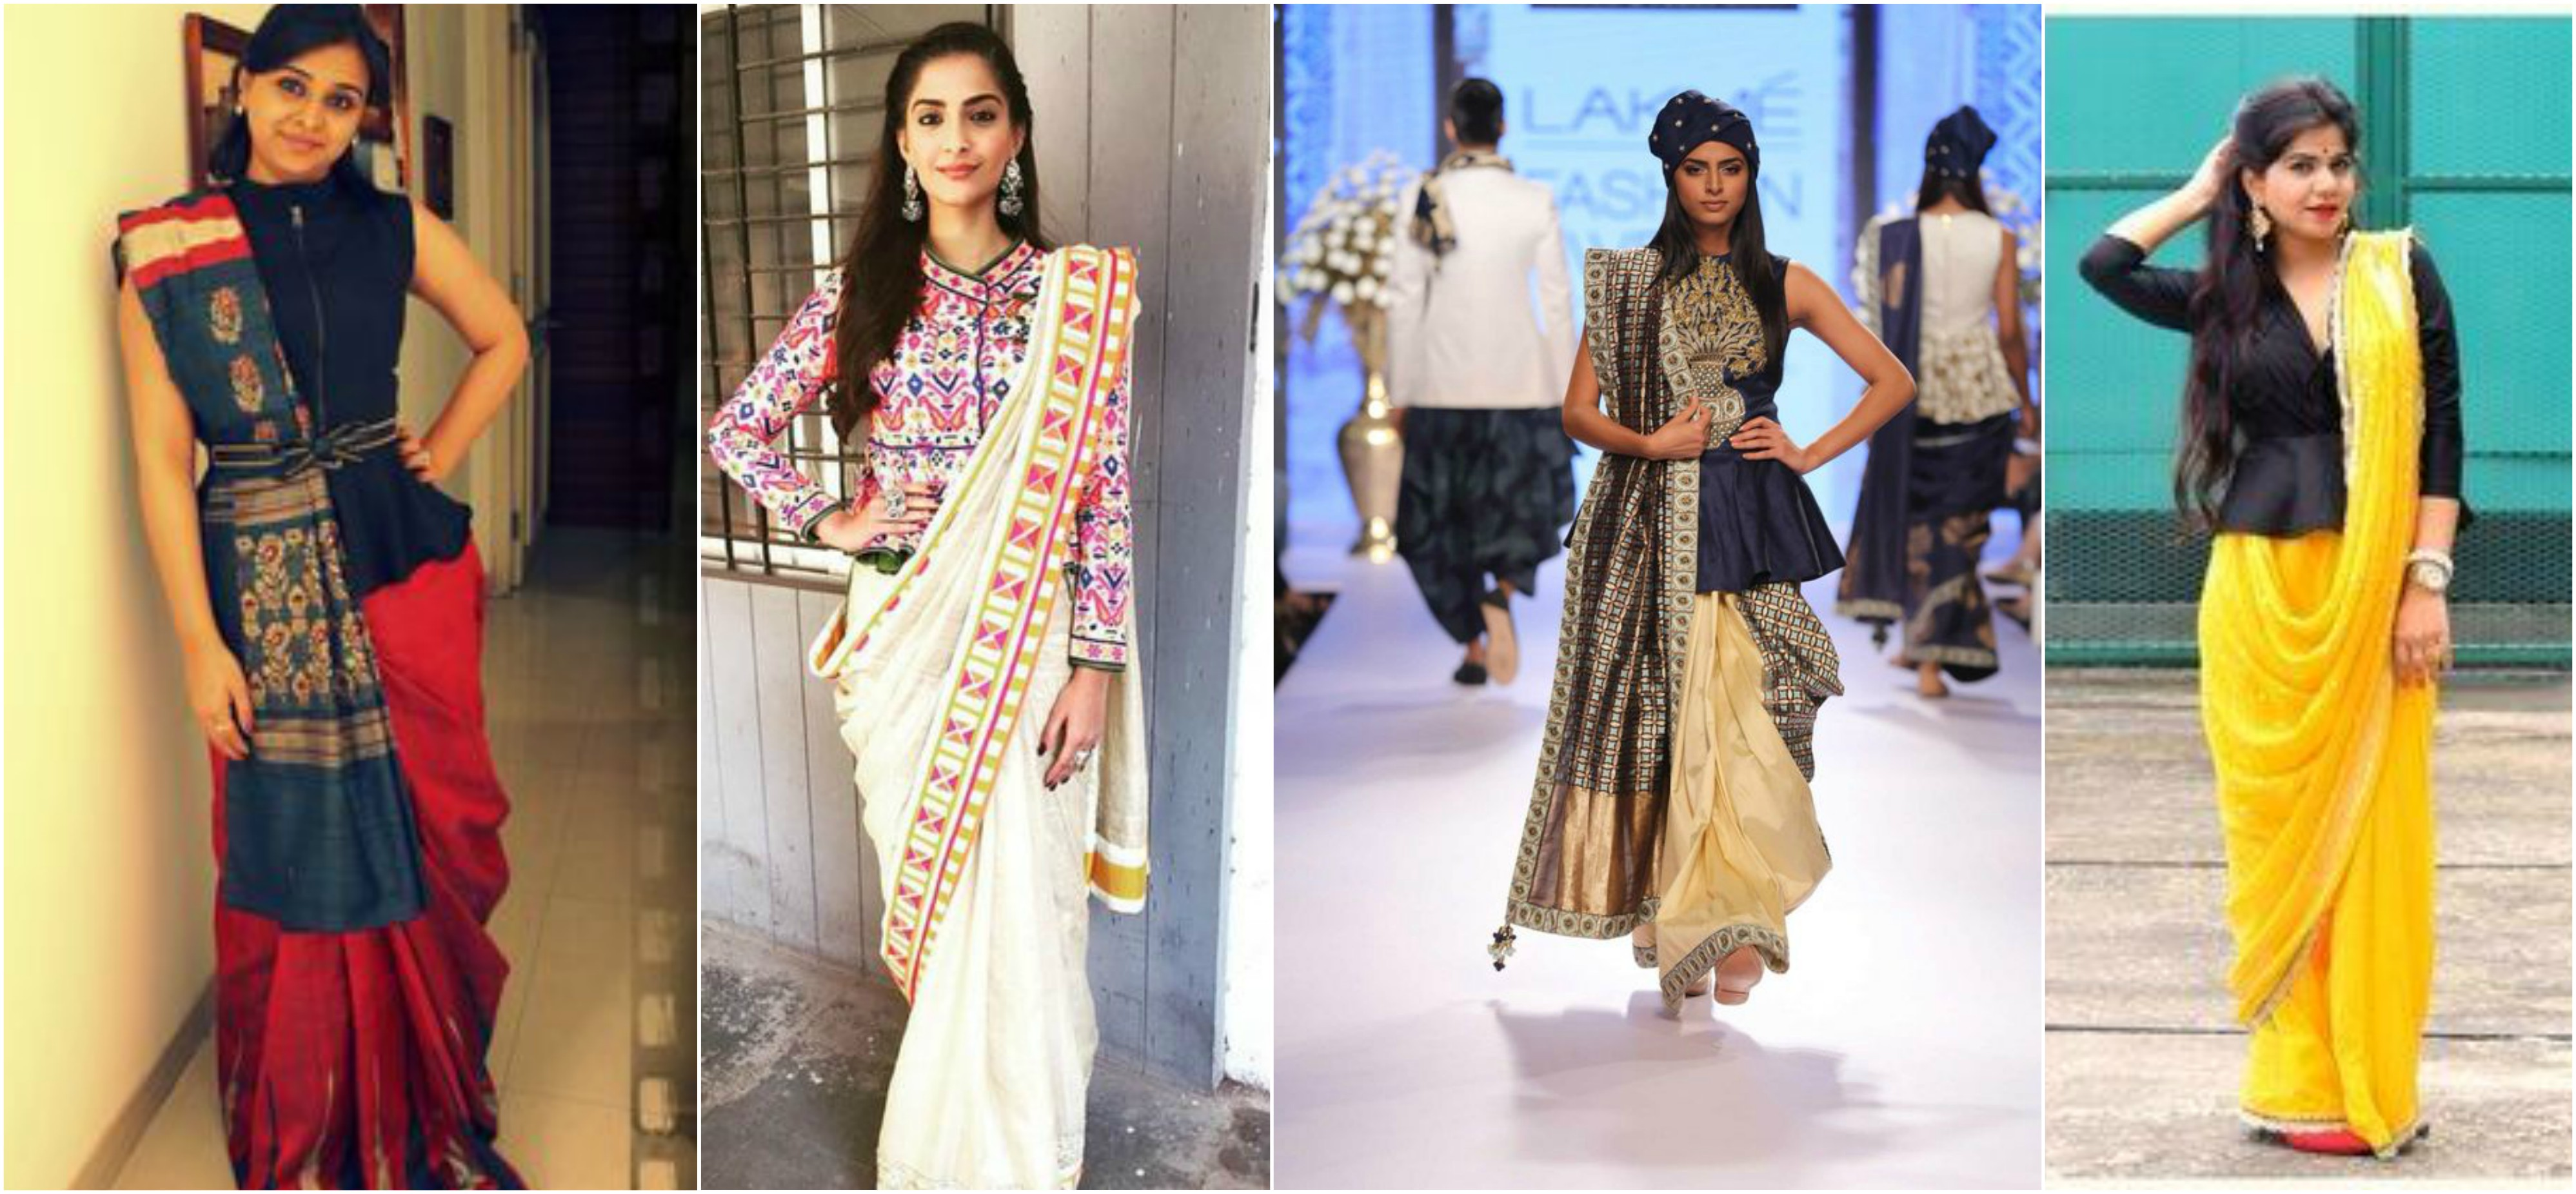 How To Mix And Match Indian Outfits For Indo Western